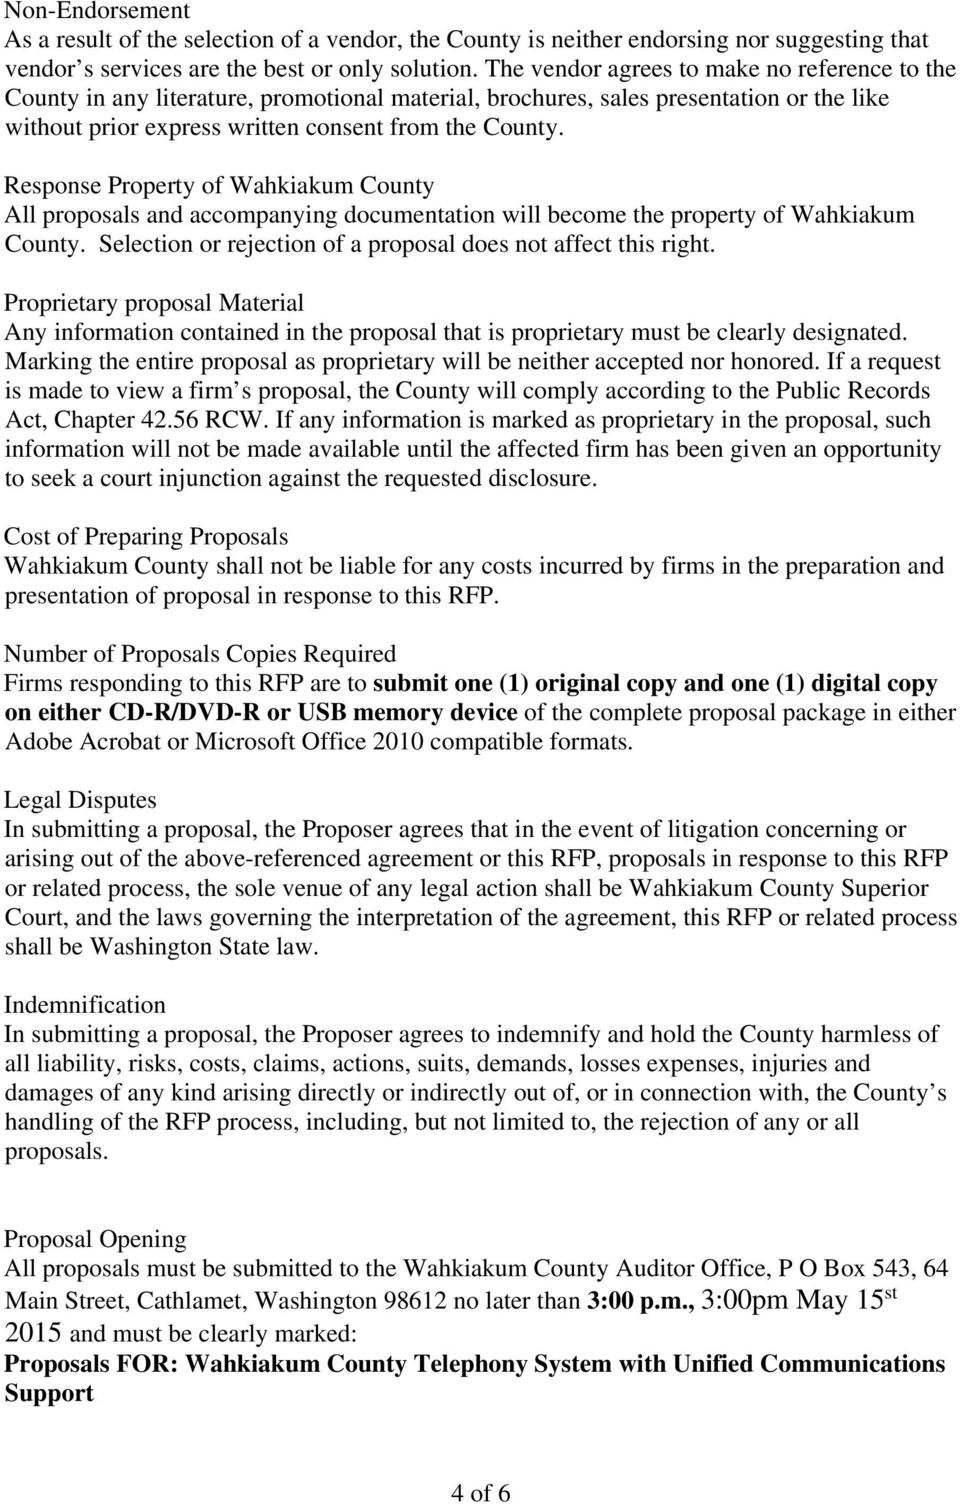 Response Property of Wahkiakum County All proposals and accompanying documentation will become the property of Wahkiakum County. Selection or rejection of a proposal does not affect this right.